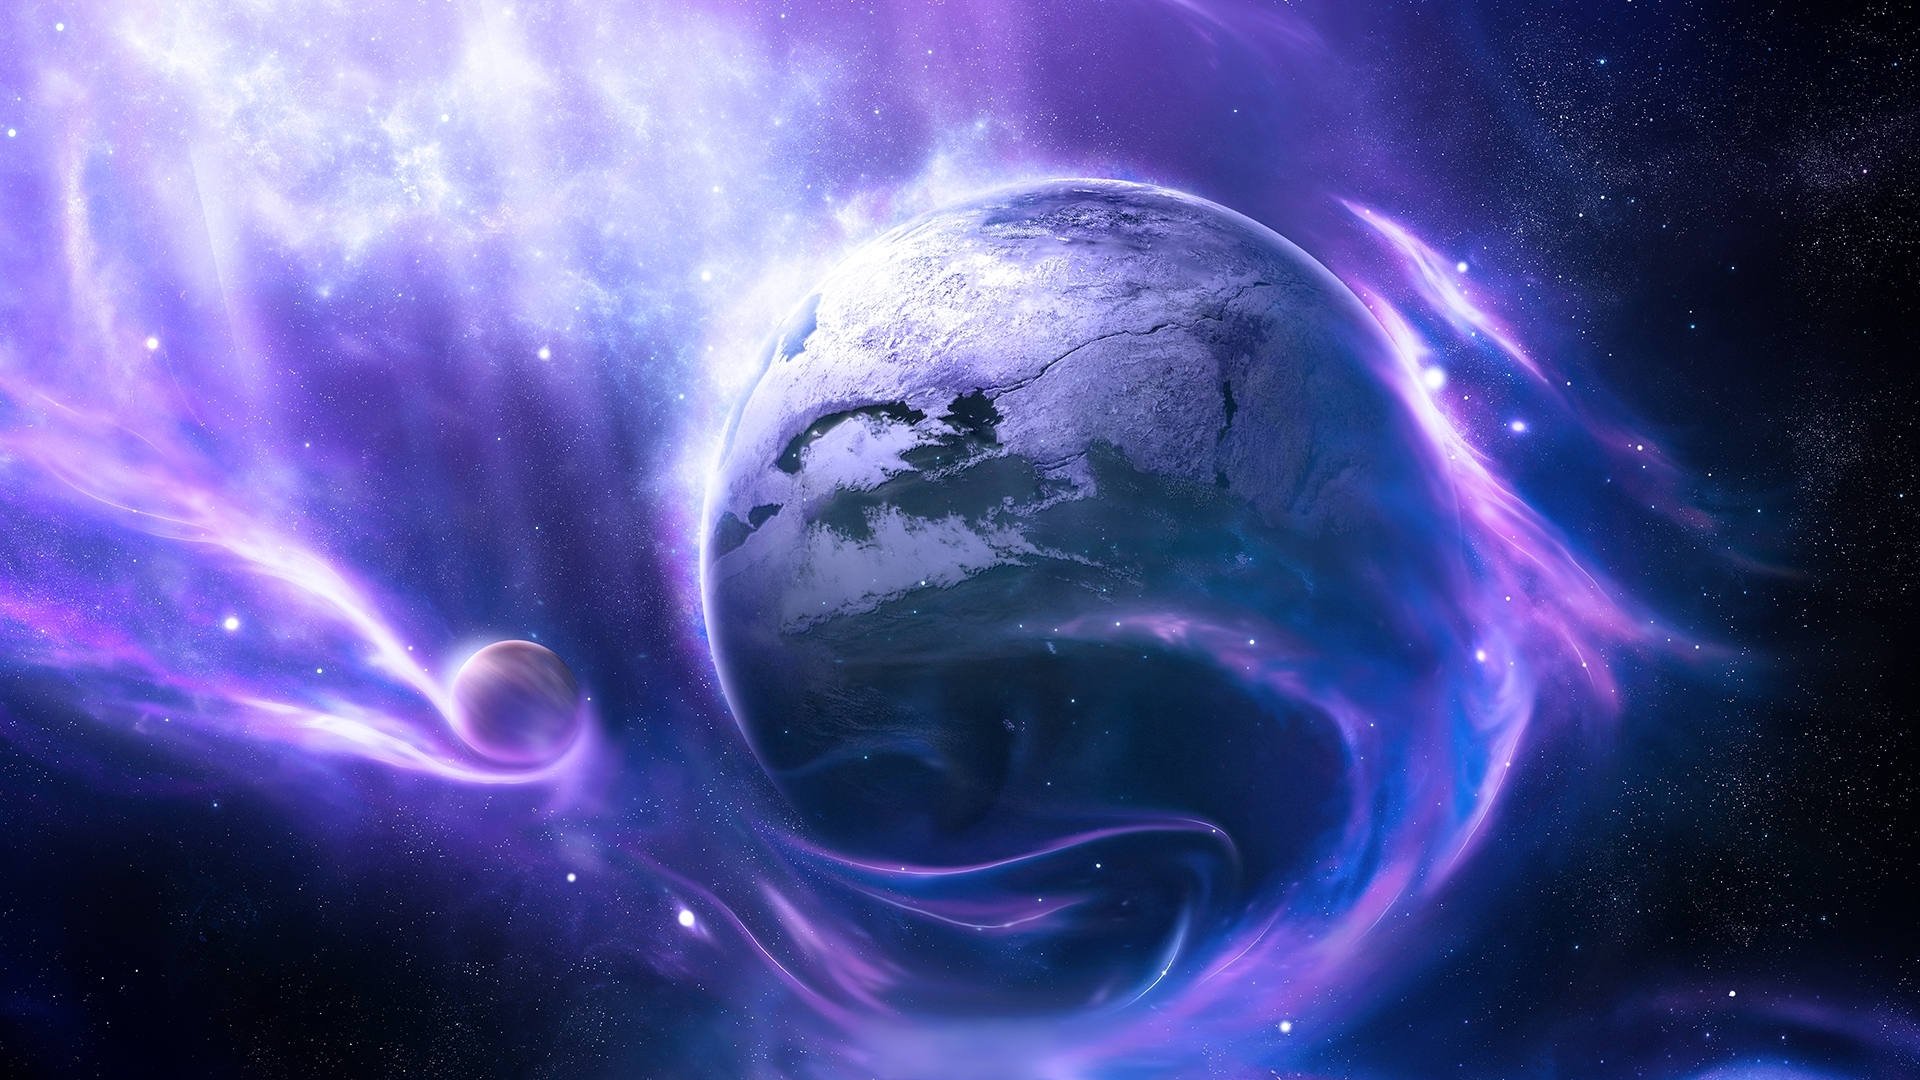 color planet aesthetic wallpapers - HD 1920×1080